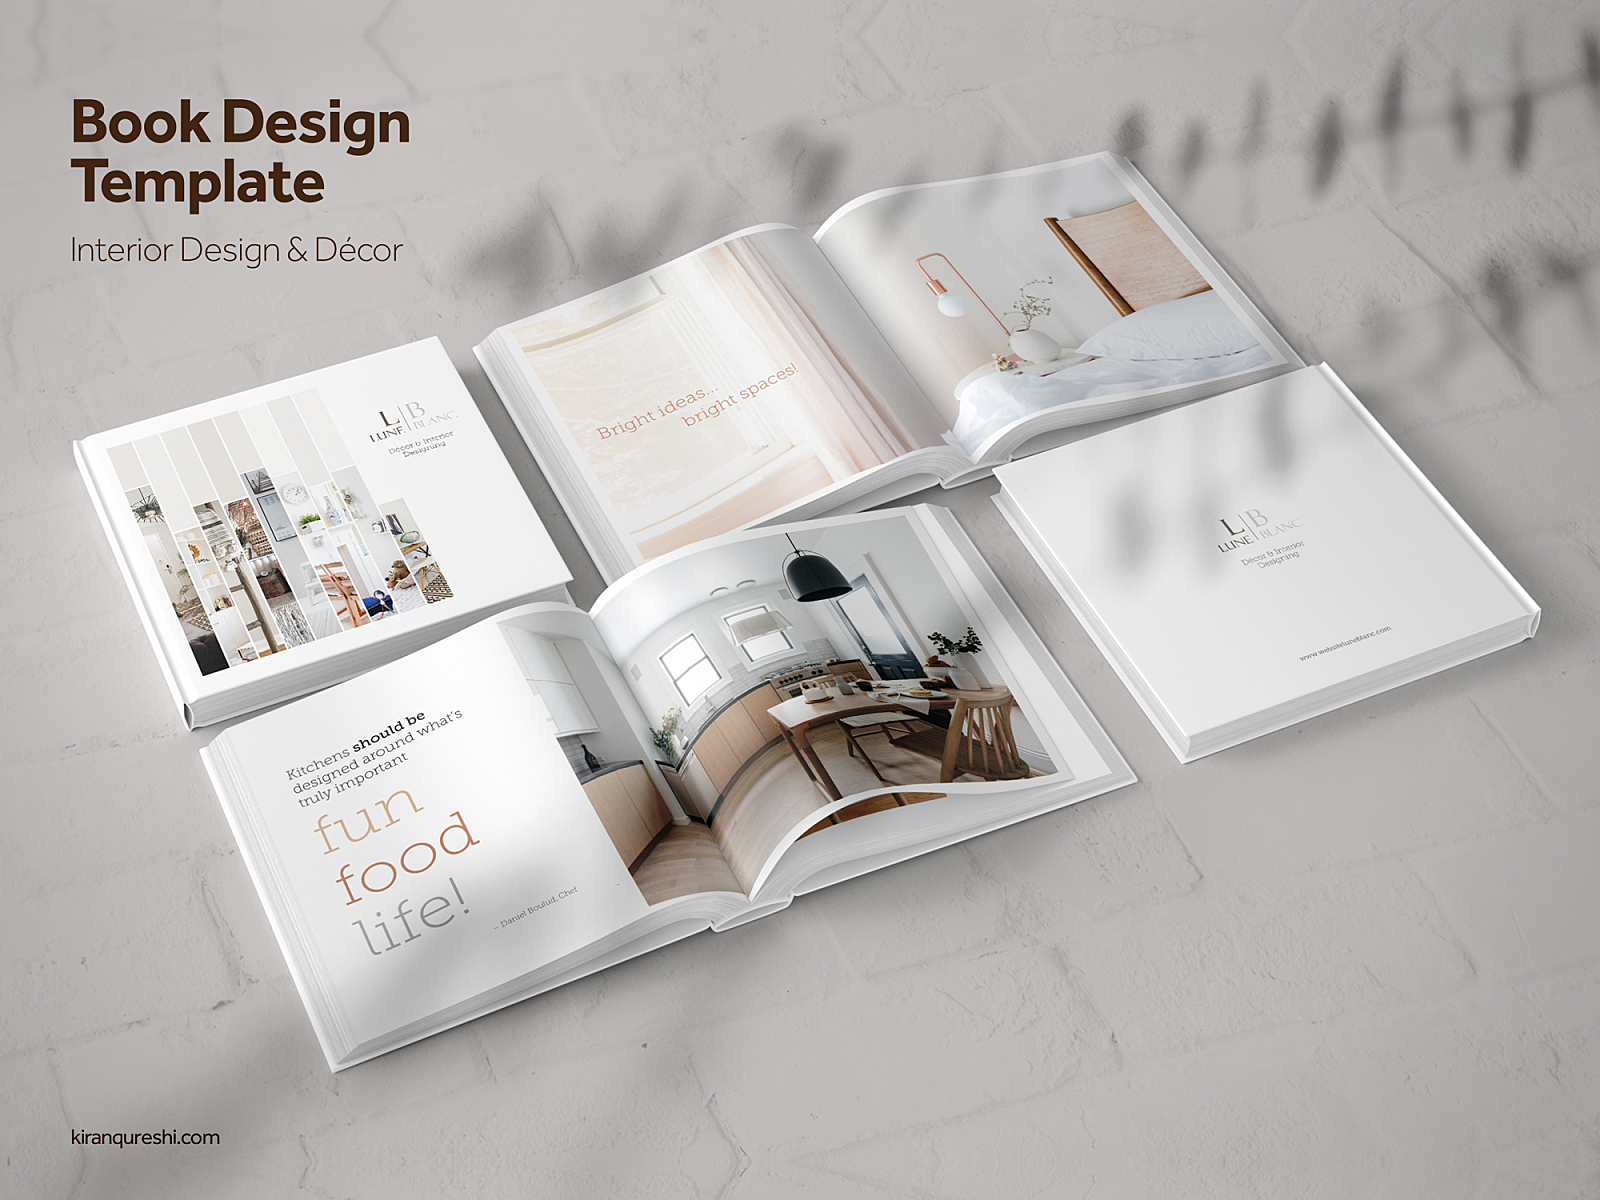 Coffee Table Book | Interior Design & Décor by Kiran Qureshi ...